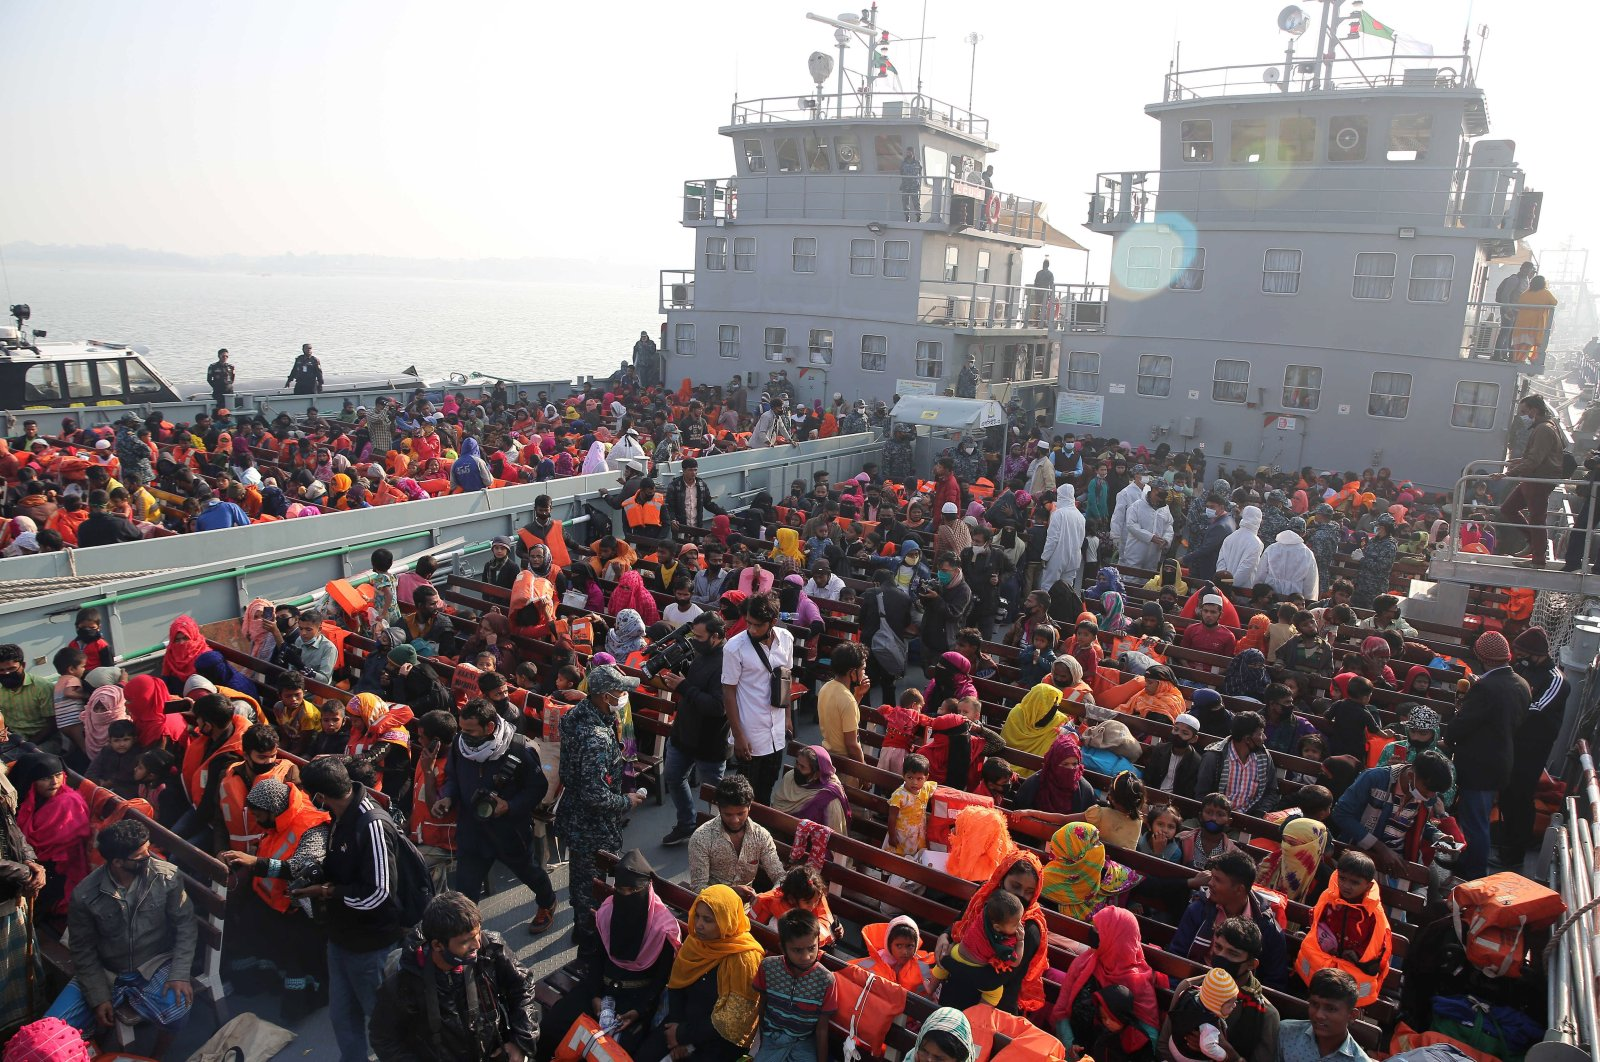 Rohingya refugees wait on naval ships to be transported to an isolated island in the Bay of Bengal, in Chittagong, Bangladesh, Dec. 29, 2020. (AP Photo)